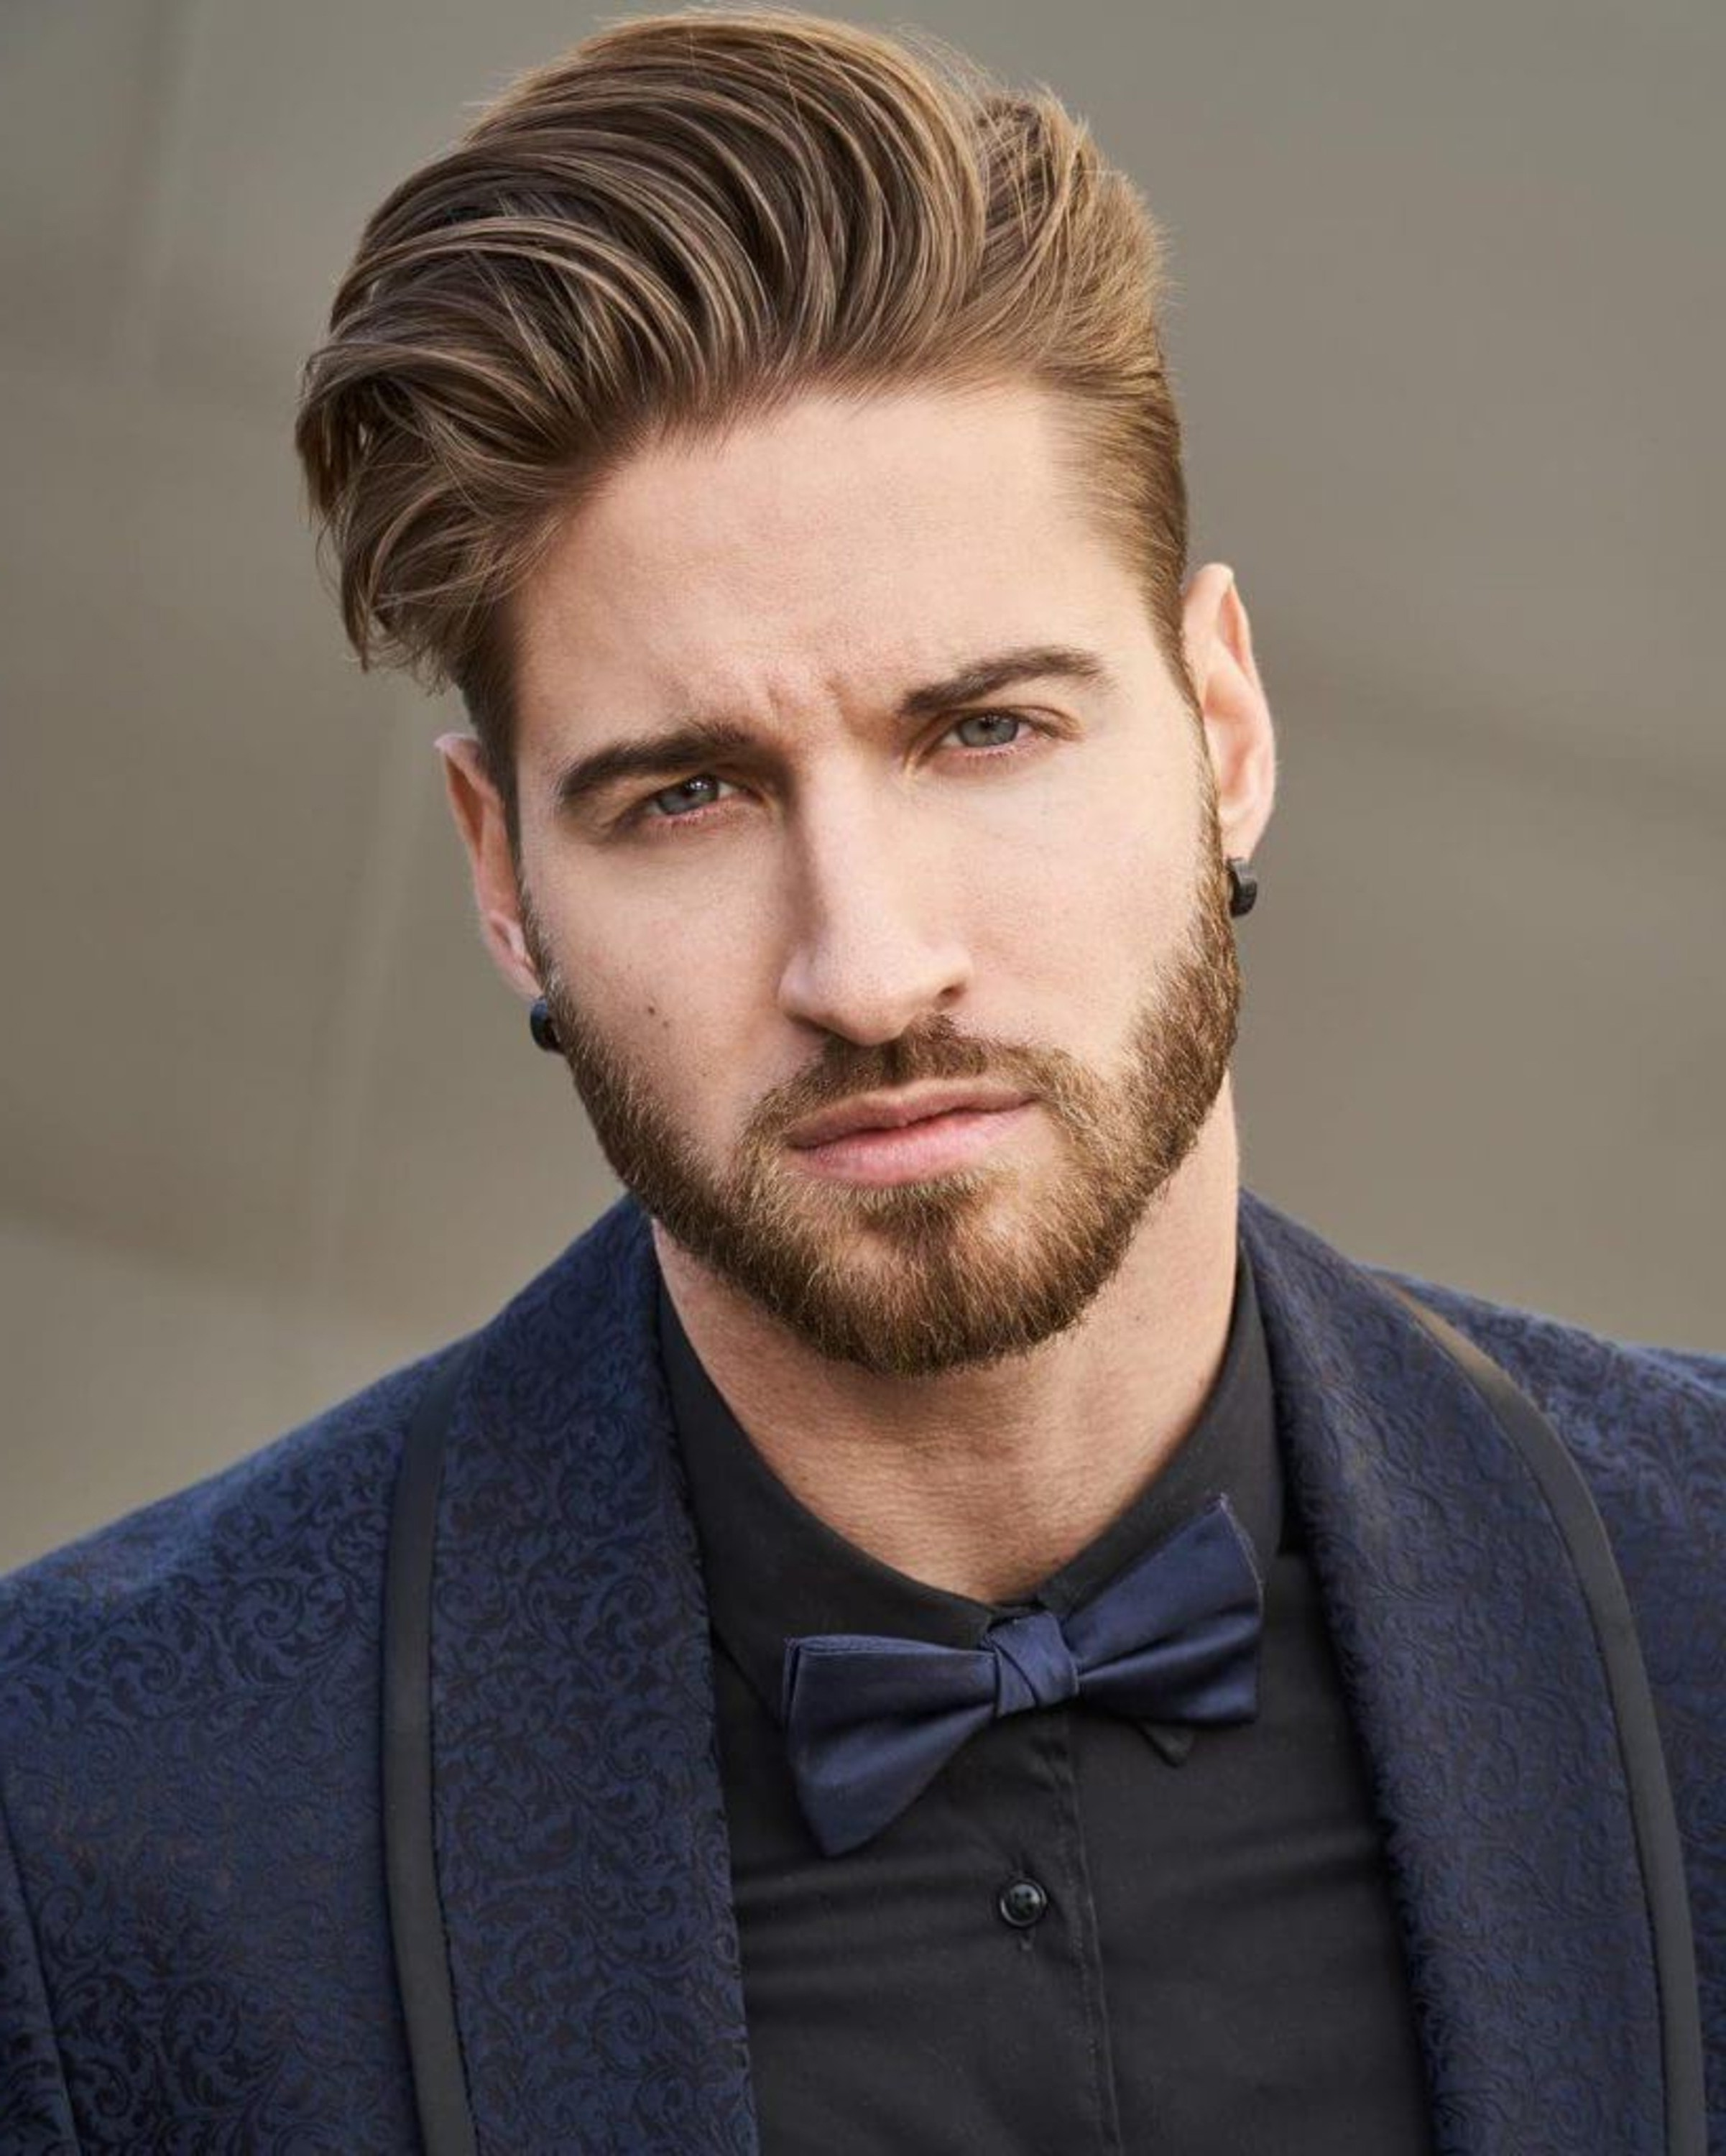 A well-trimmed short beard for elegant guys.